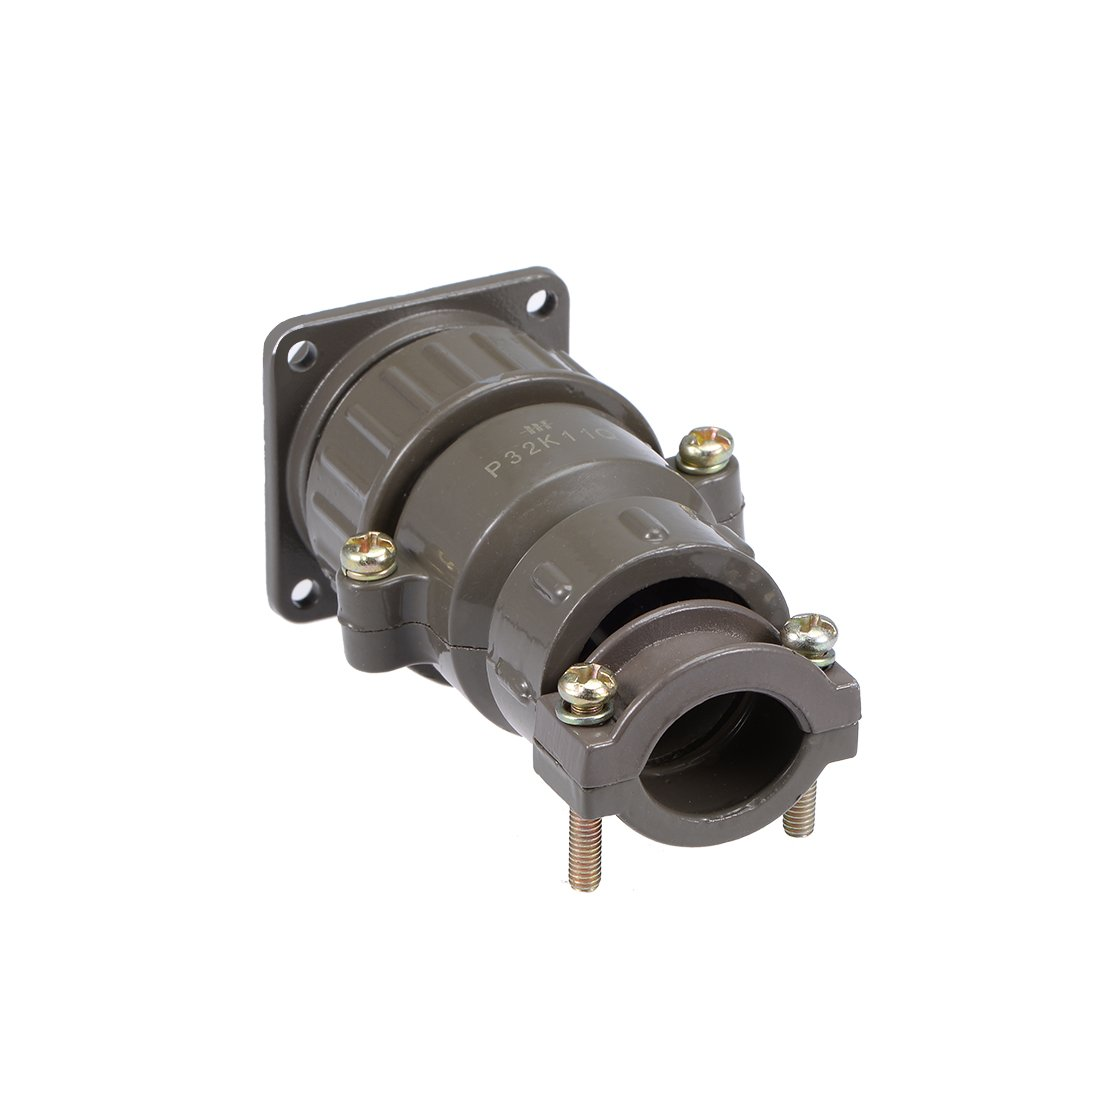 uxcell Aviation Connector 47.5mm 26P 10A 500V P48K6Q Waterproof Male Wire Panel Power Chassis Metal Fittings Connector Aviation Brown